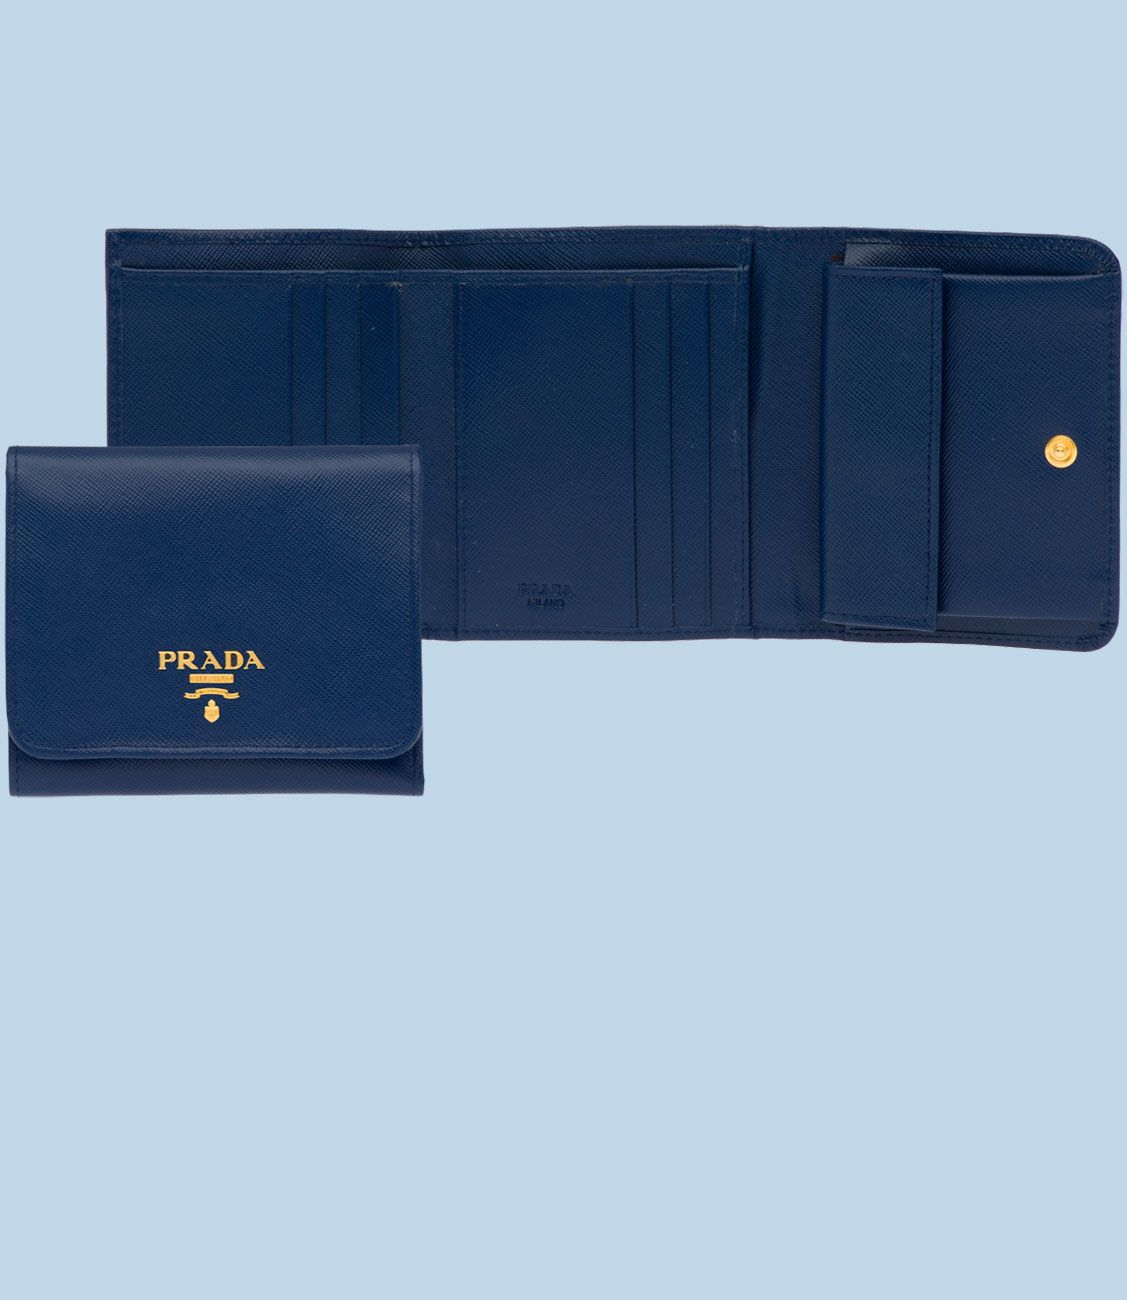 Prada Wallet Blue